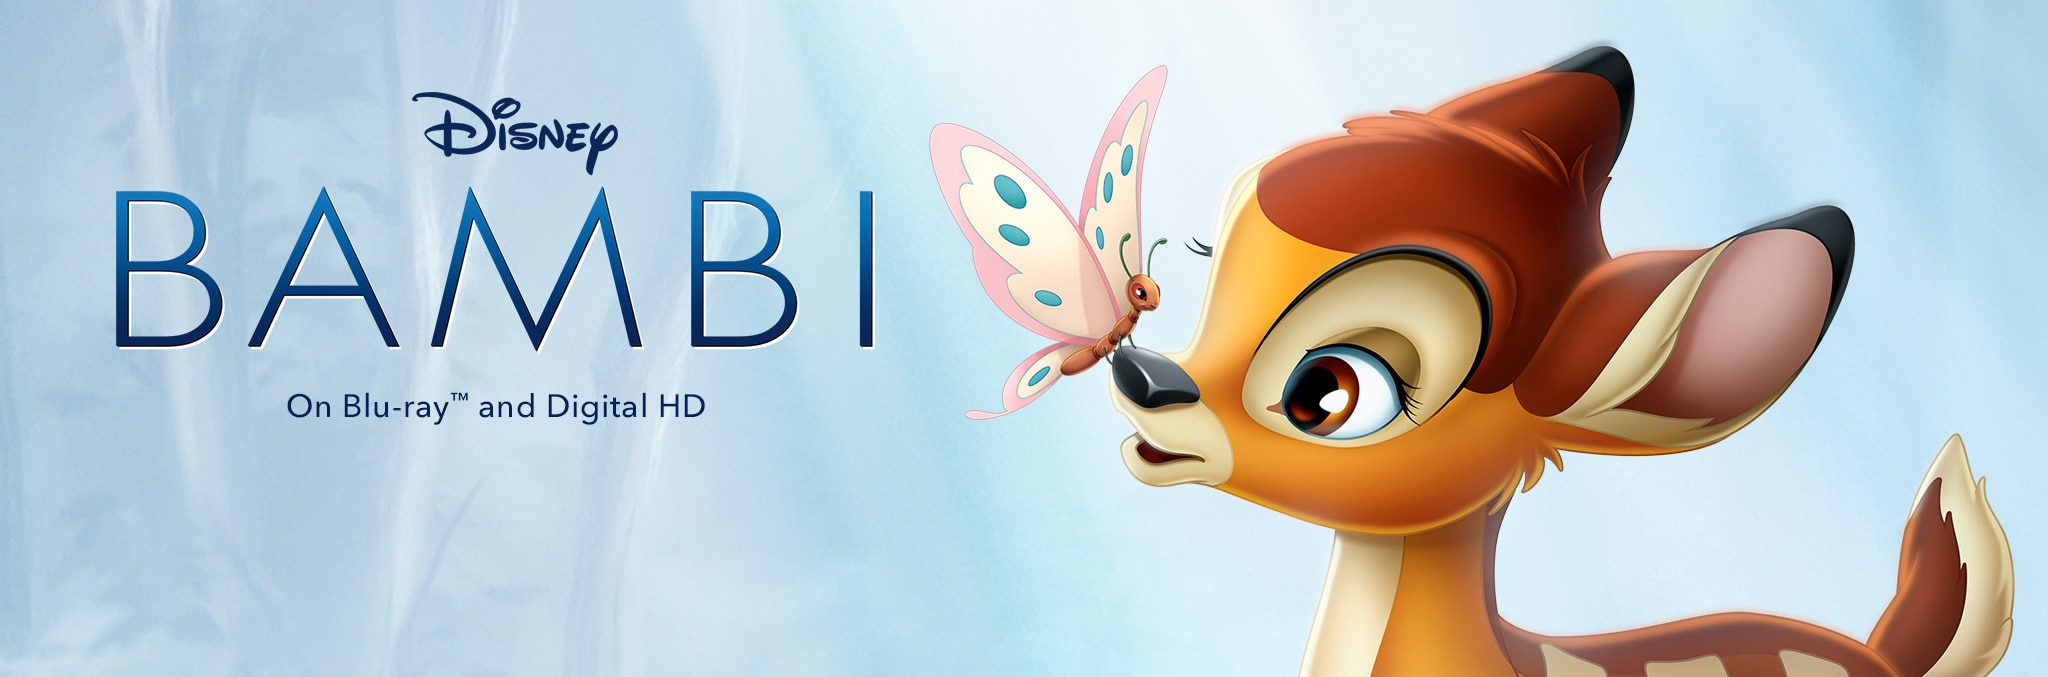 Bambi Now on Digital on Bluray and Digital HD